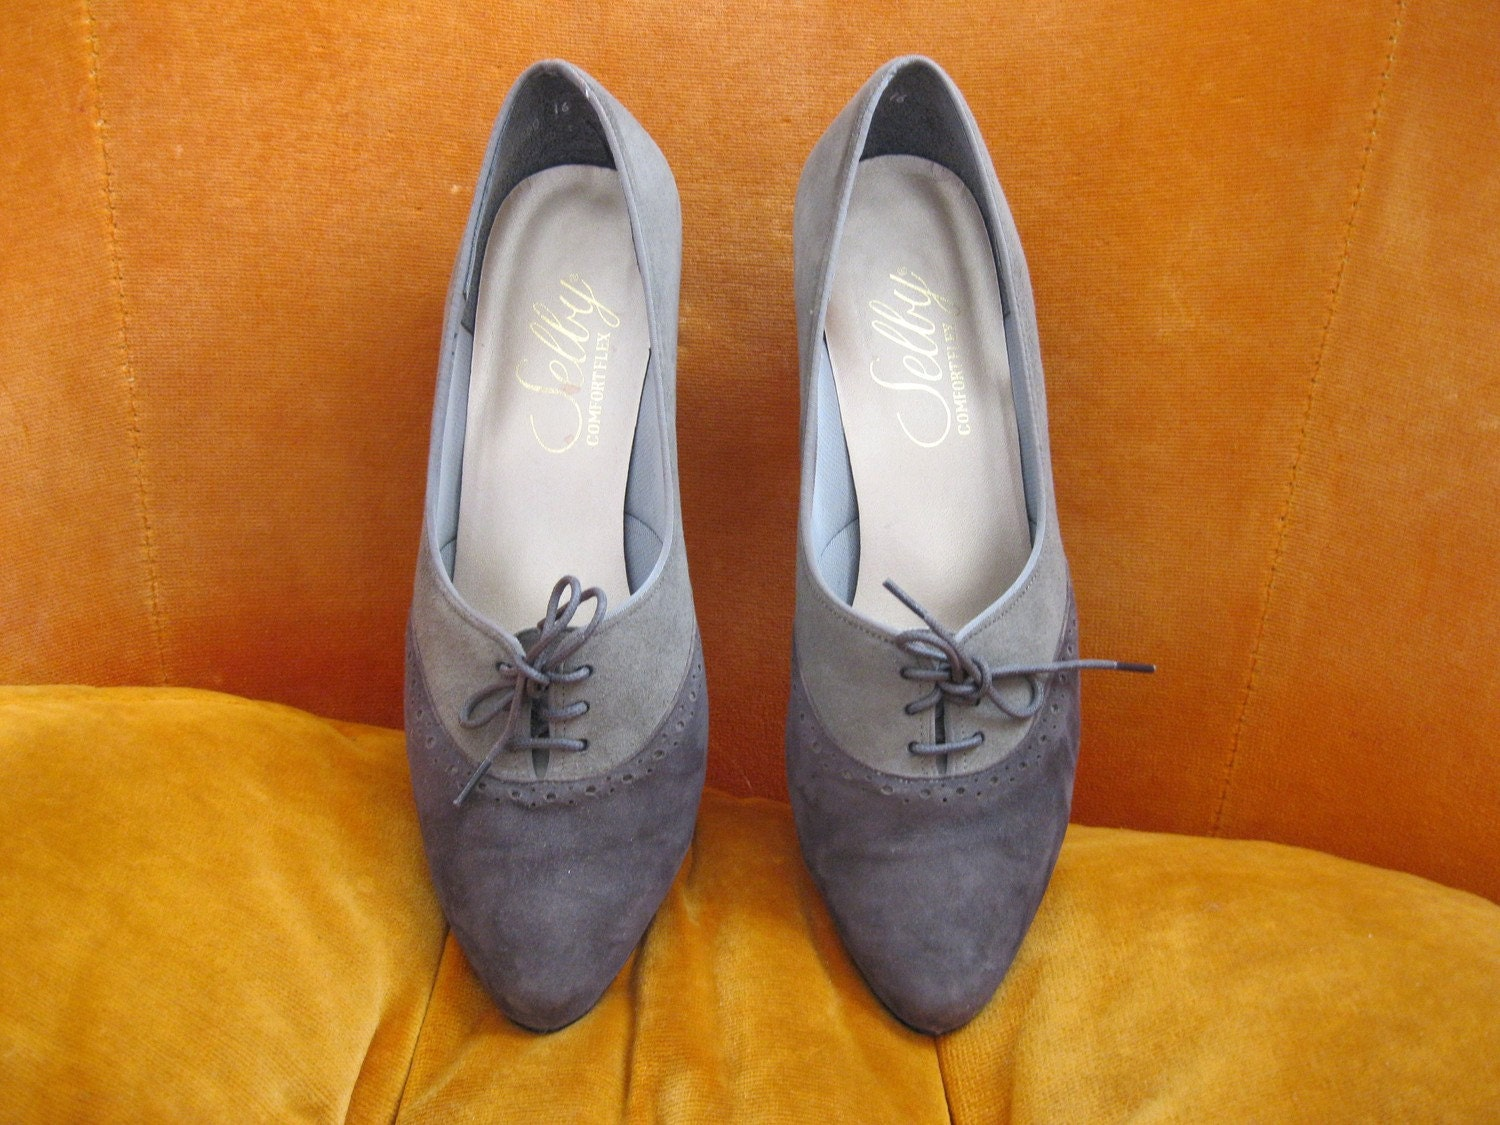 Vintage Women s Gray Selby Oxford Heels / Shoes - Size 9